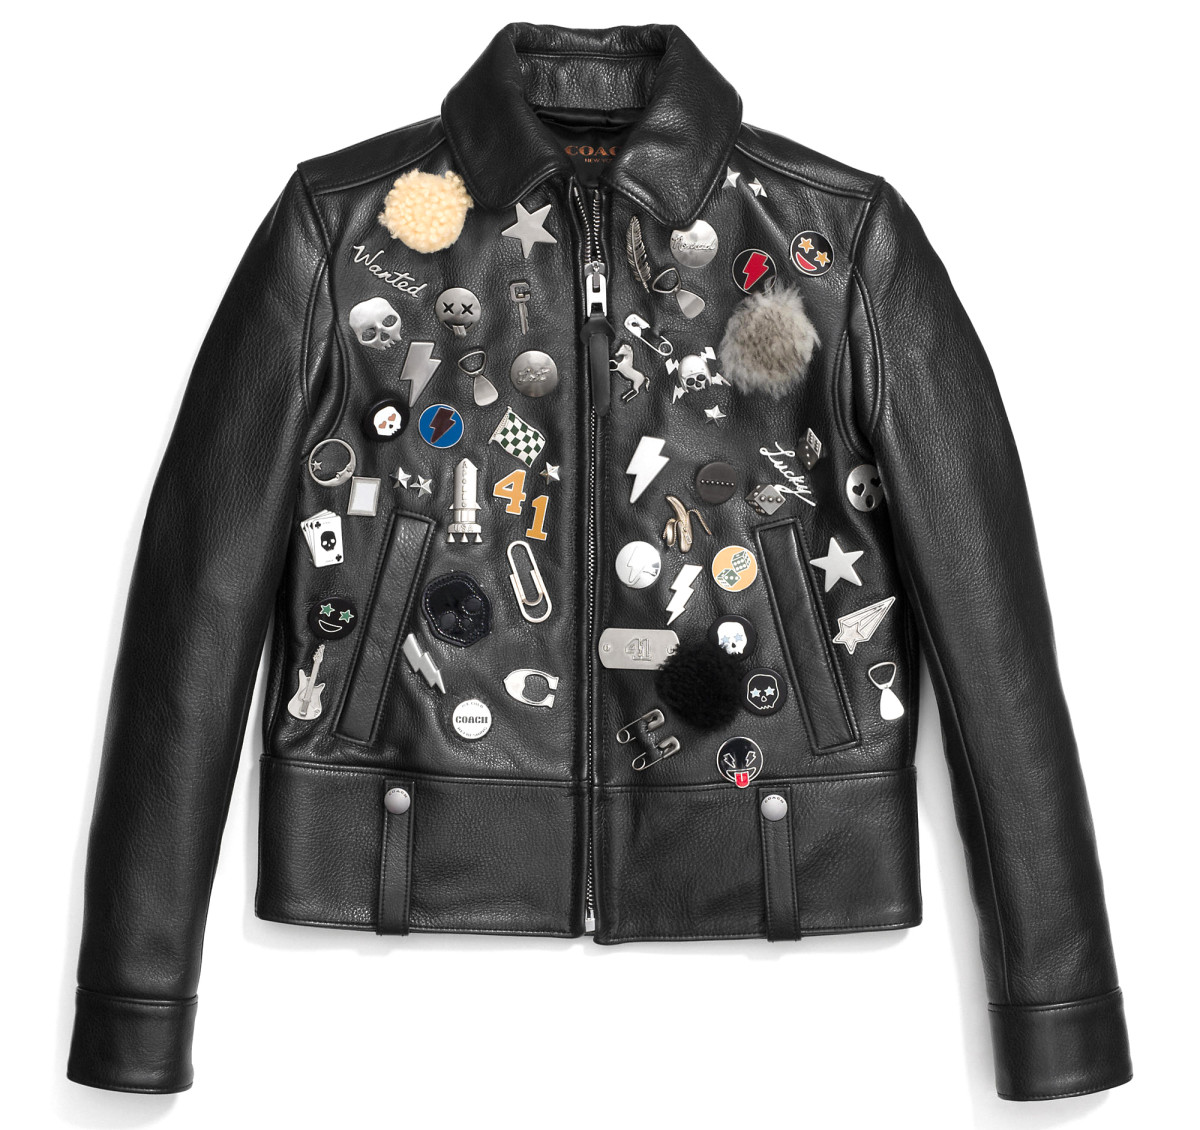 Coach embellished racer jacket, $1,550, available at Coach.